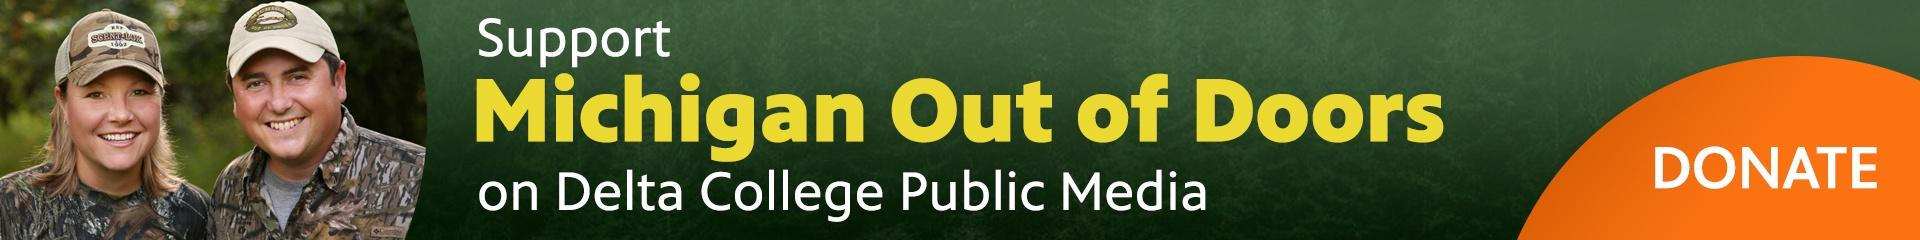 Support Michigan Out of Doors on Delta College Public Media - Donate